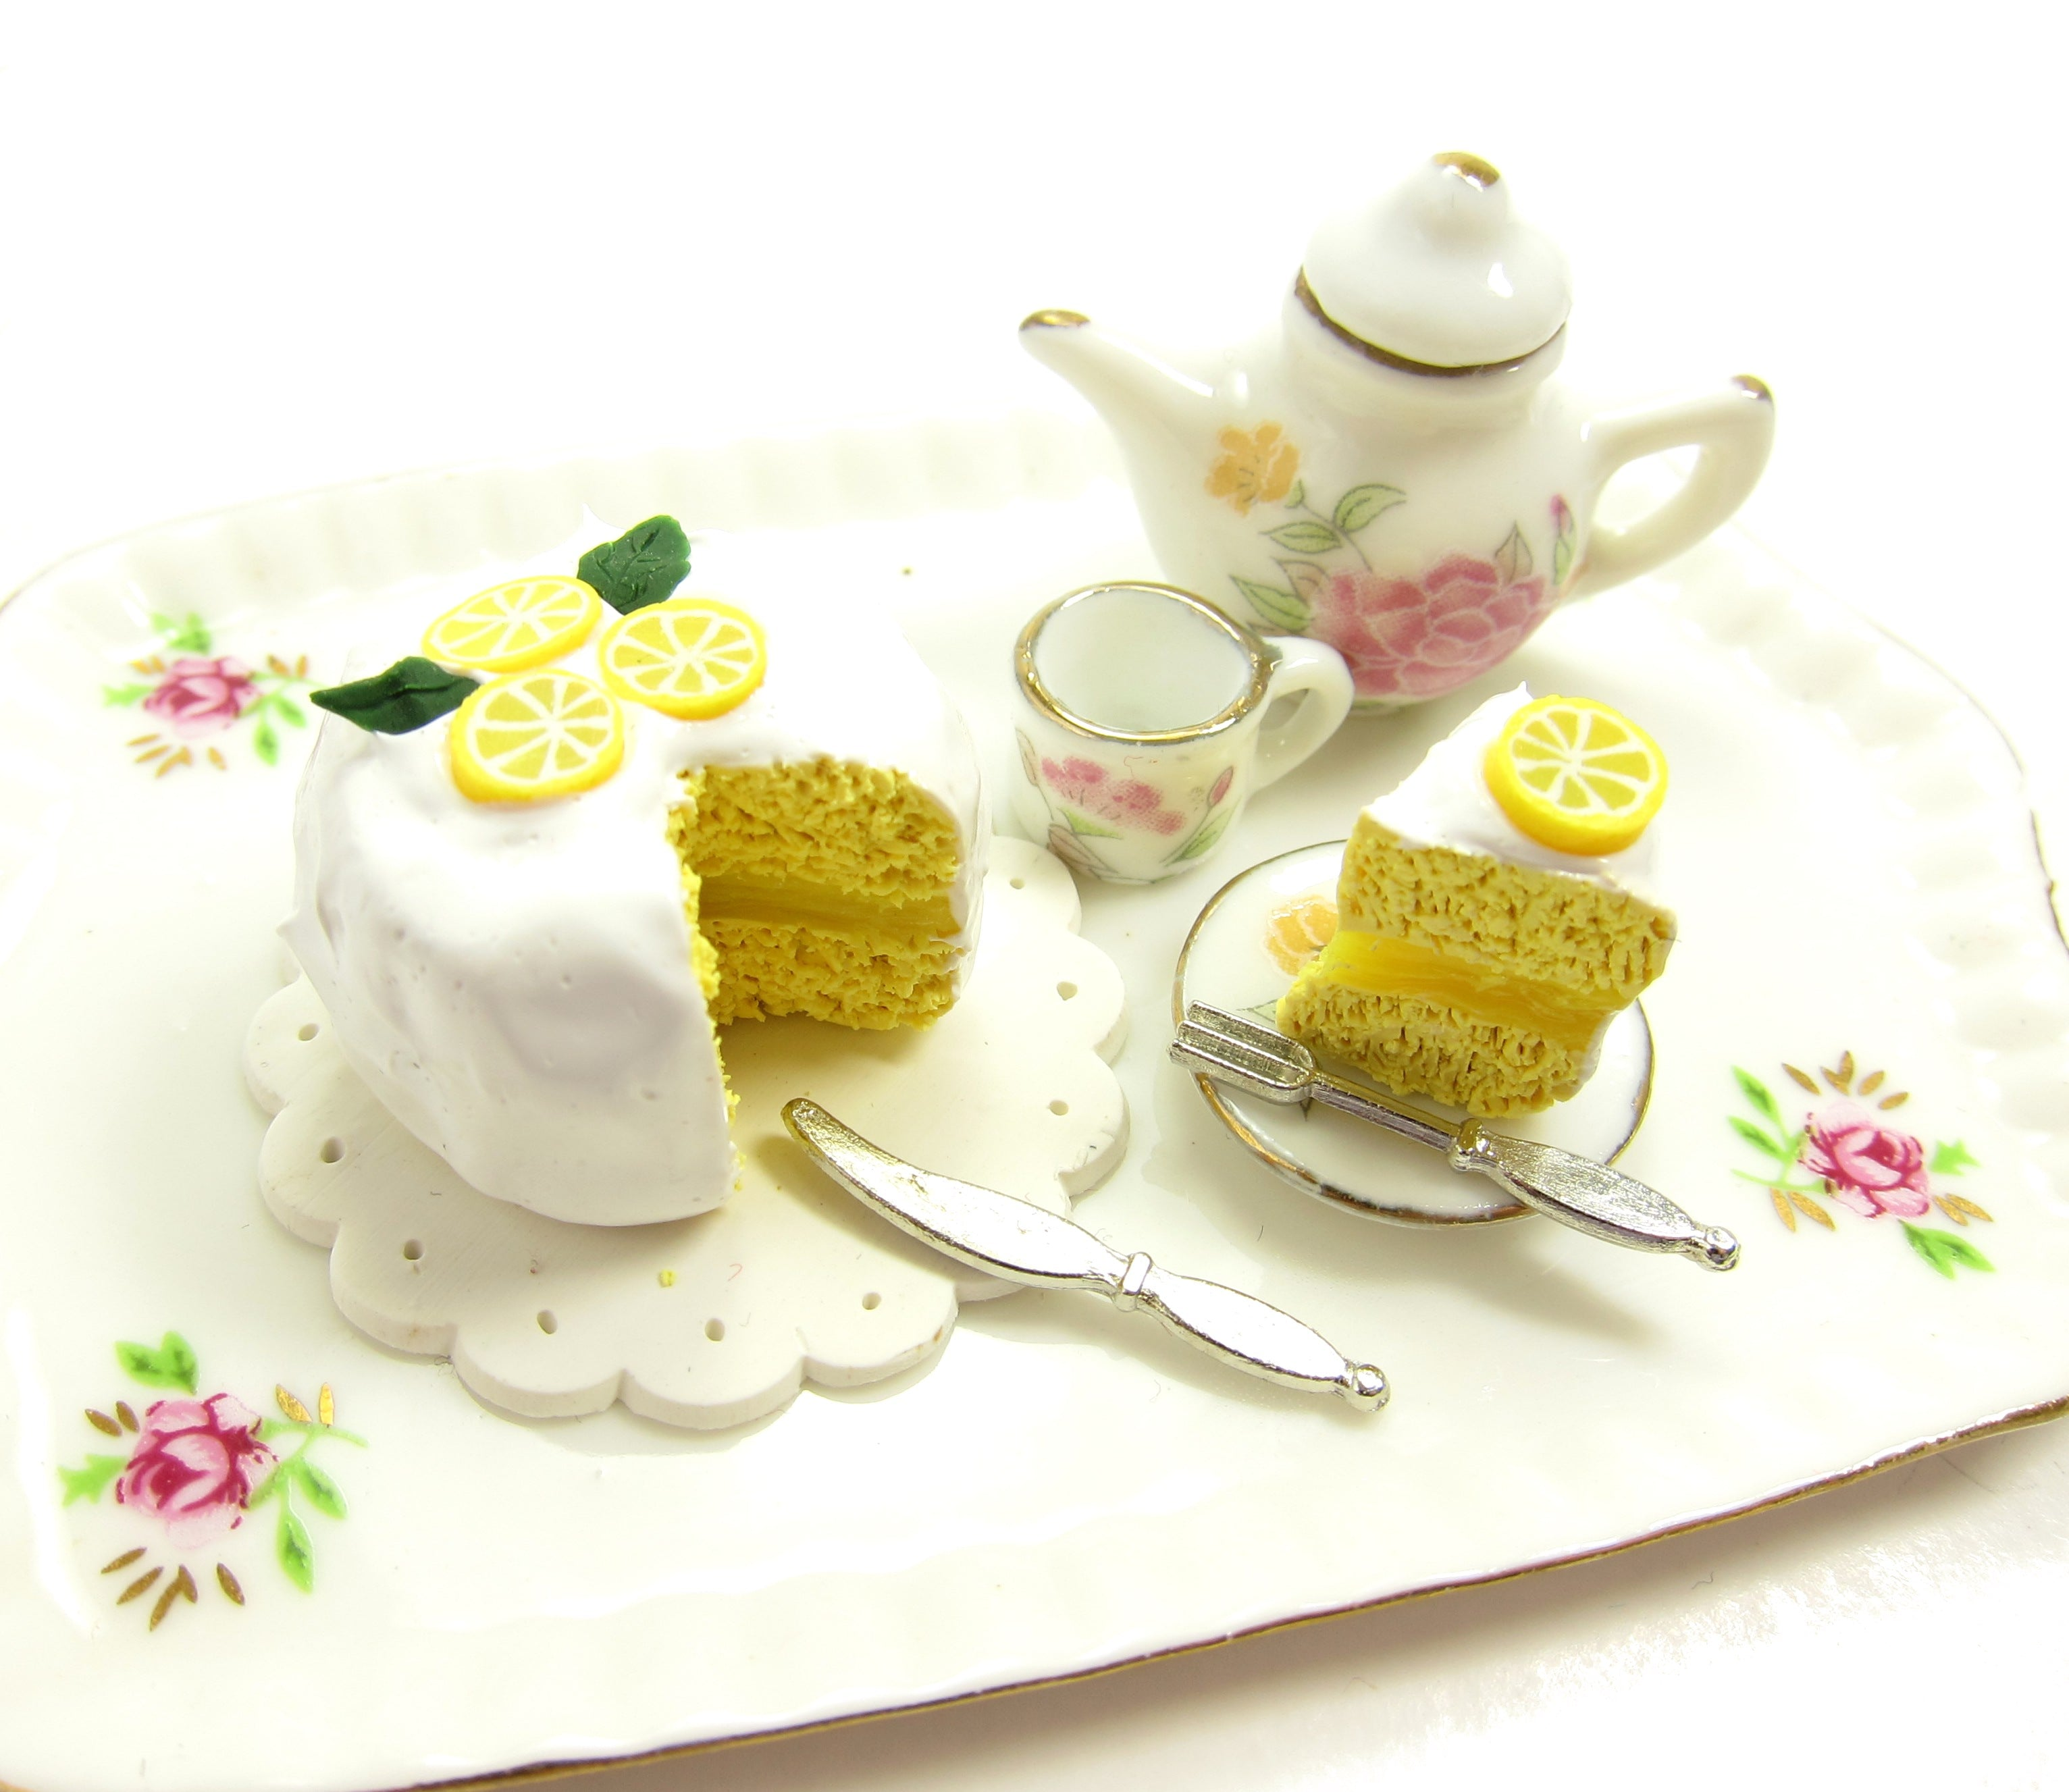 Lemon chiffon cake miniature dollhouse scale food